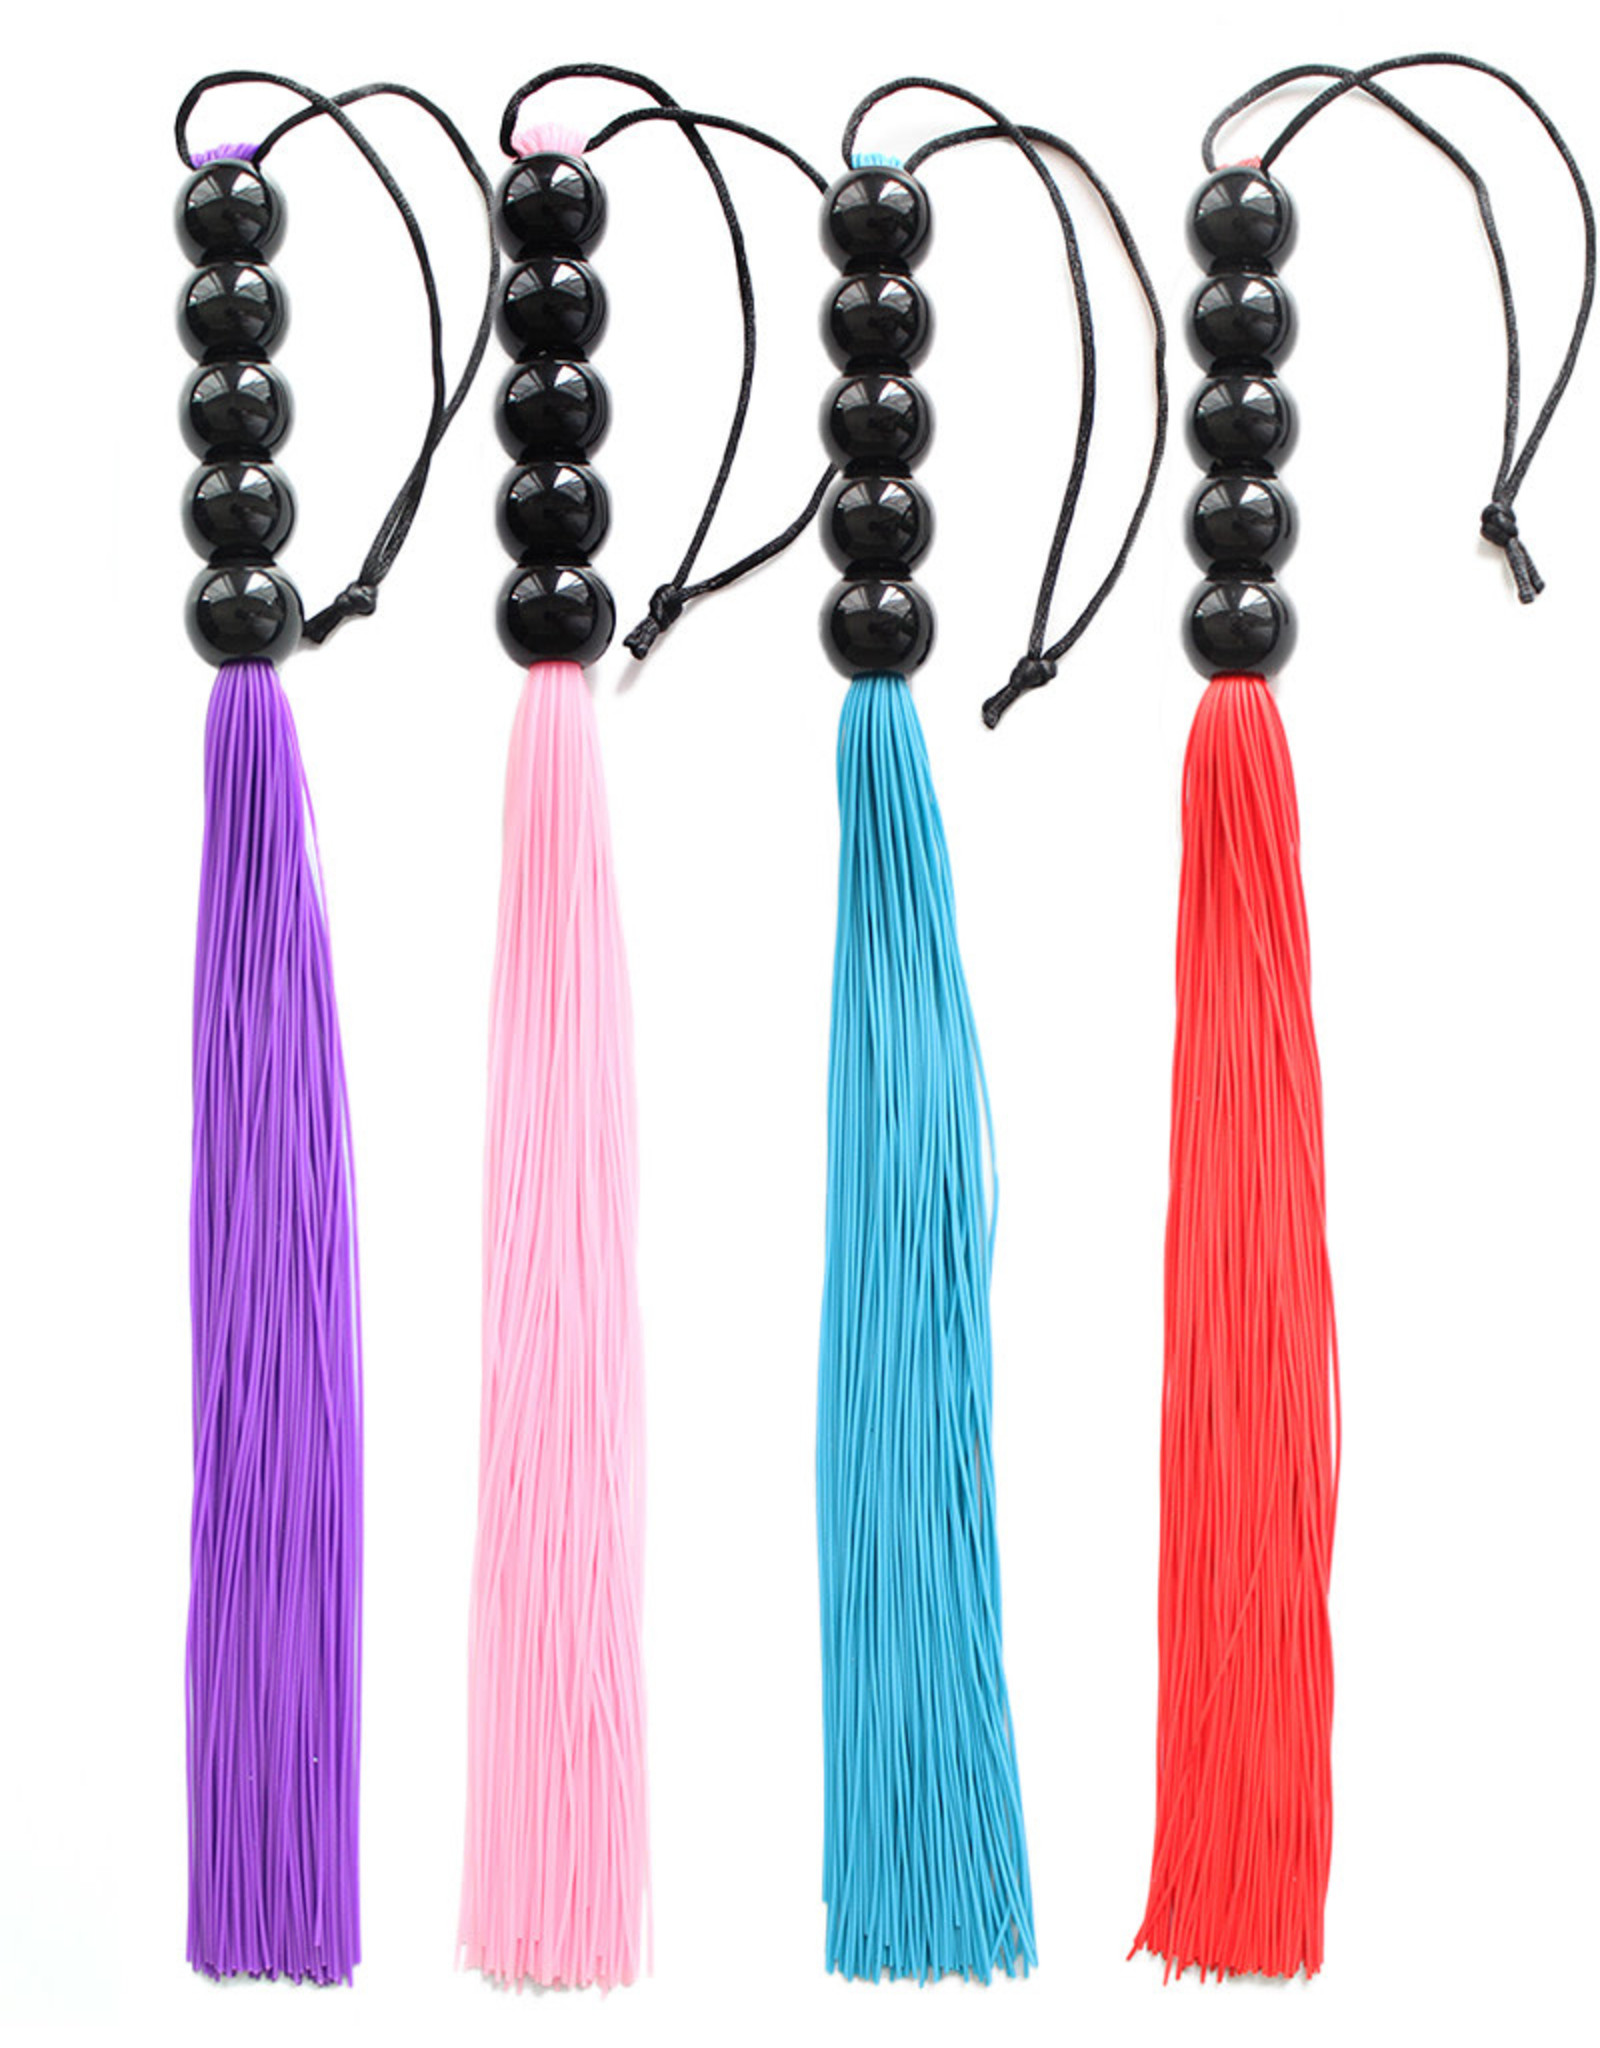 SILICONE WHIP WITH BEAD HANDLE - PURPLE